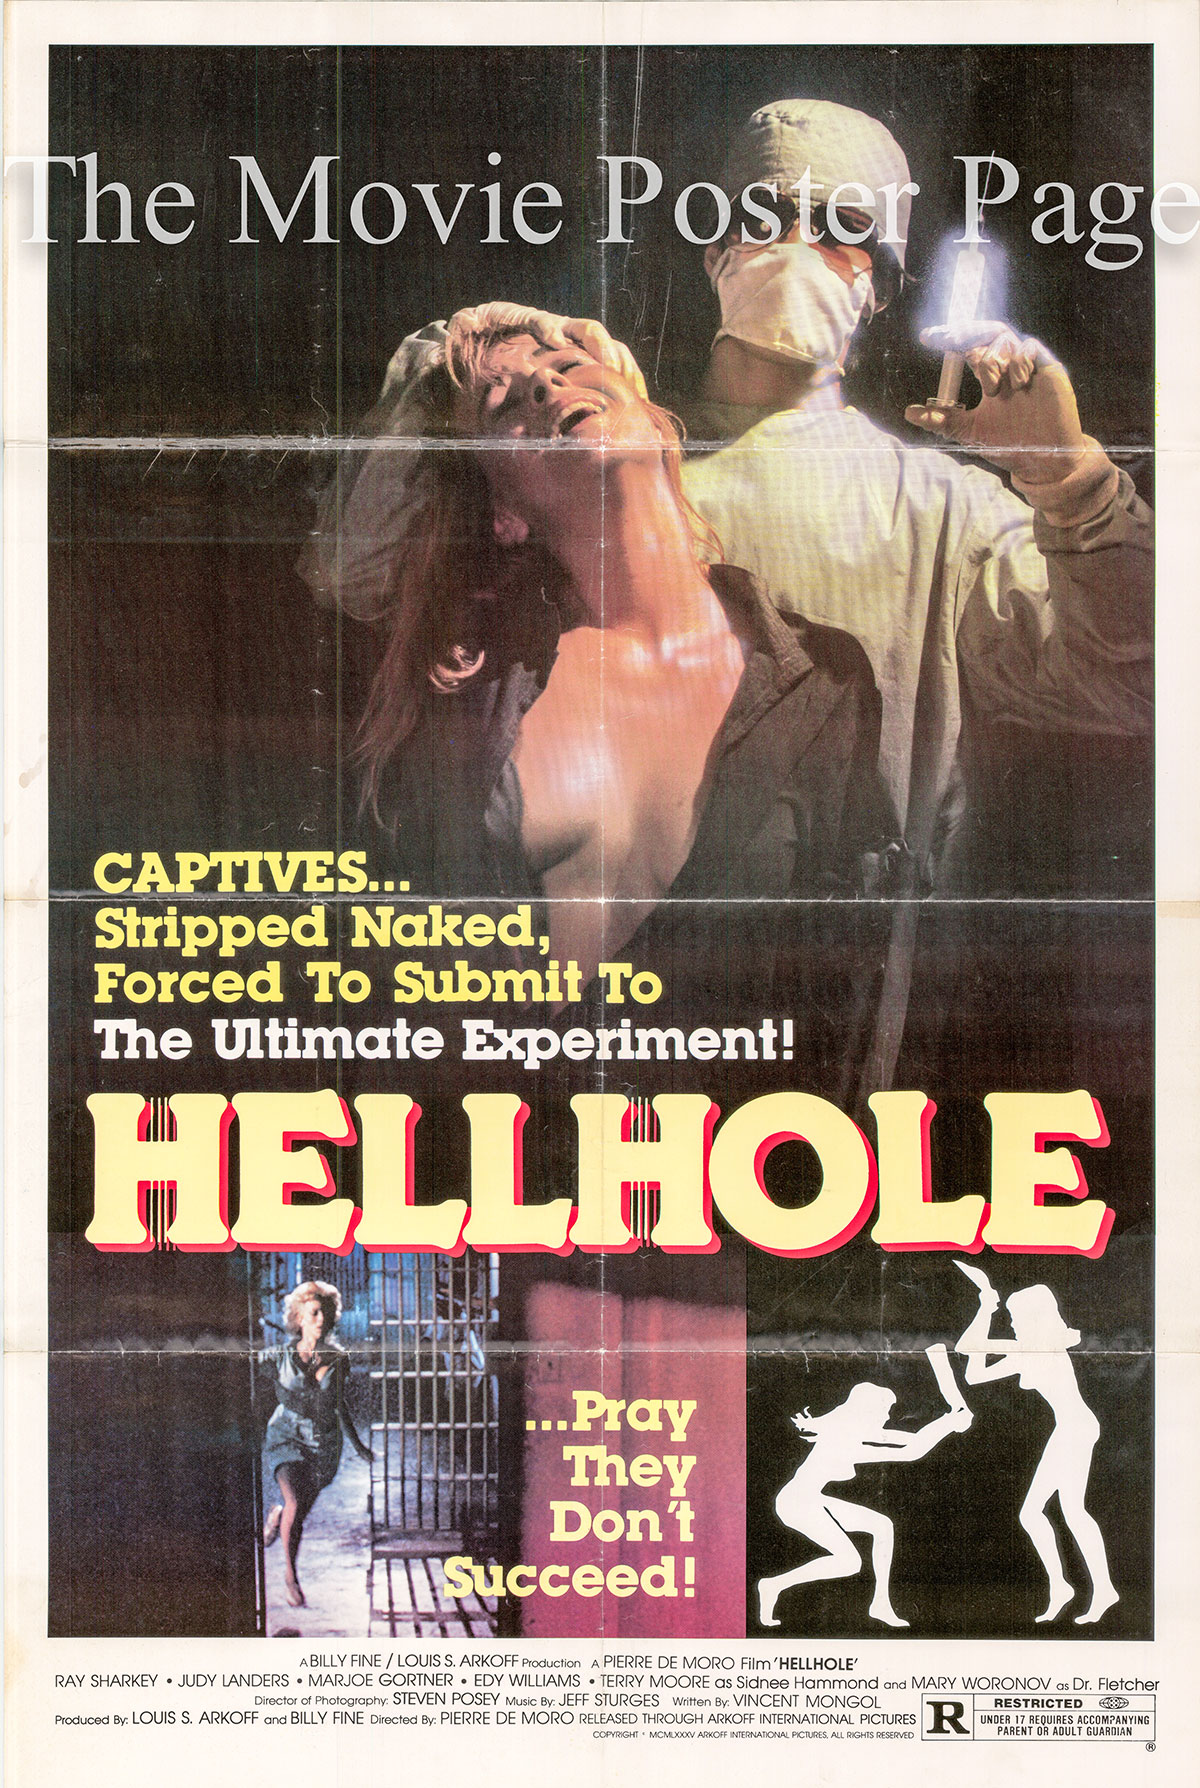 Pictured is a US one-sheet poster for the 1985 Pierre De Moro film Hellhole starring Ray Sharkey.